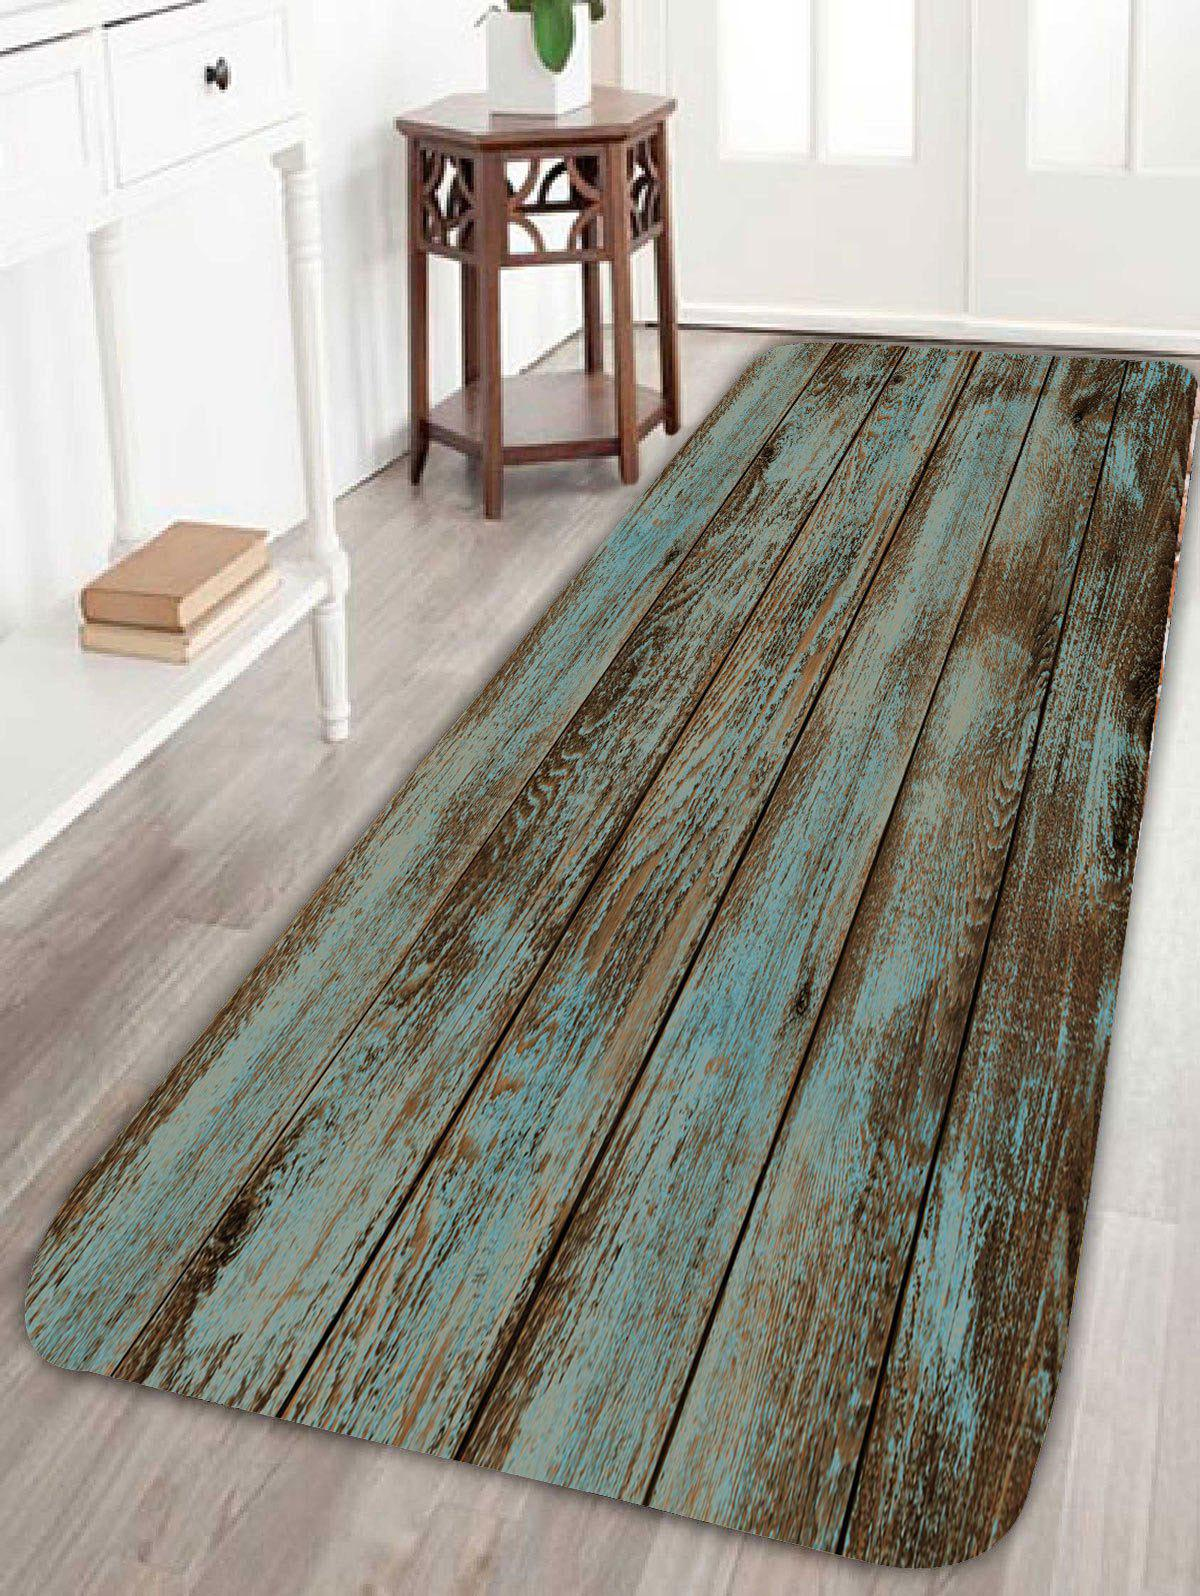 Vintage Wood Grain Printed Bathroom RugHOME<br><br>Size: W24 INCH * L71 INCH; Color: GREEN; Products Type: Bath rugs; Materials: Coral FLeece; Pattern: Print; Style: Vintage; Shape: Rectangle; Package Contents: 1 x Rug;